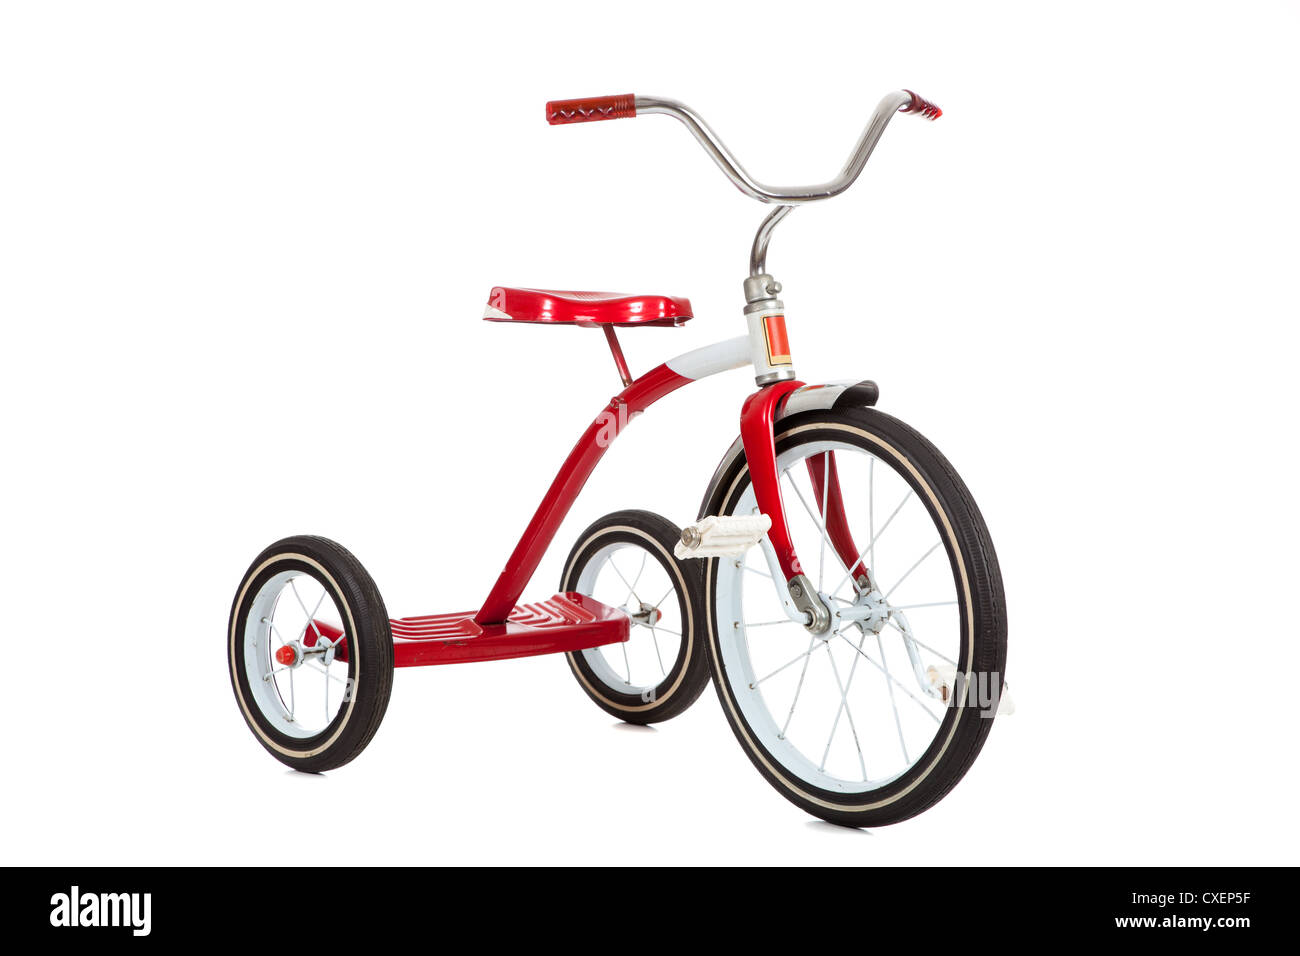 Red vintage tricycle on a white background - Stock Image